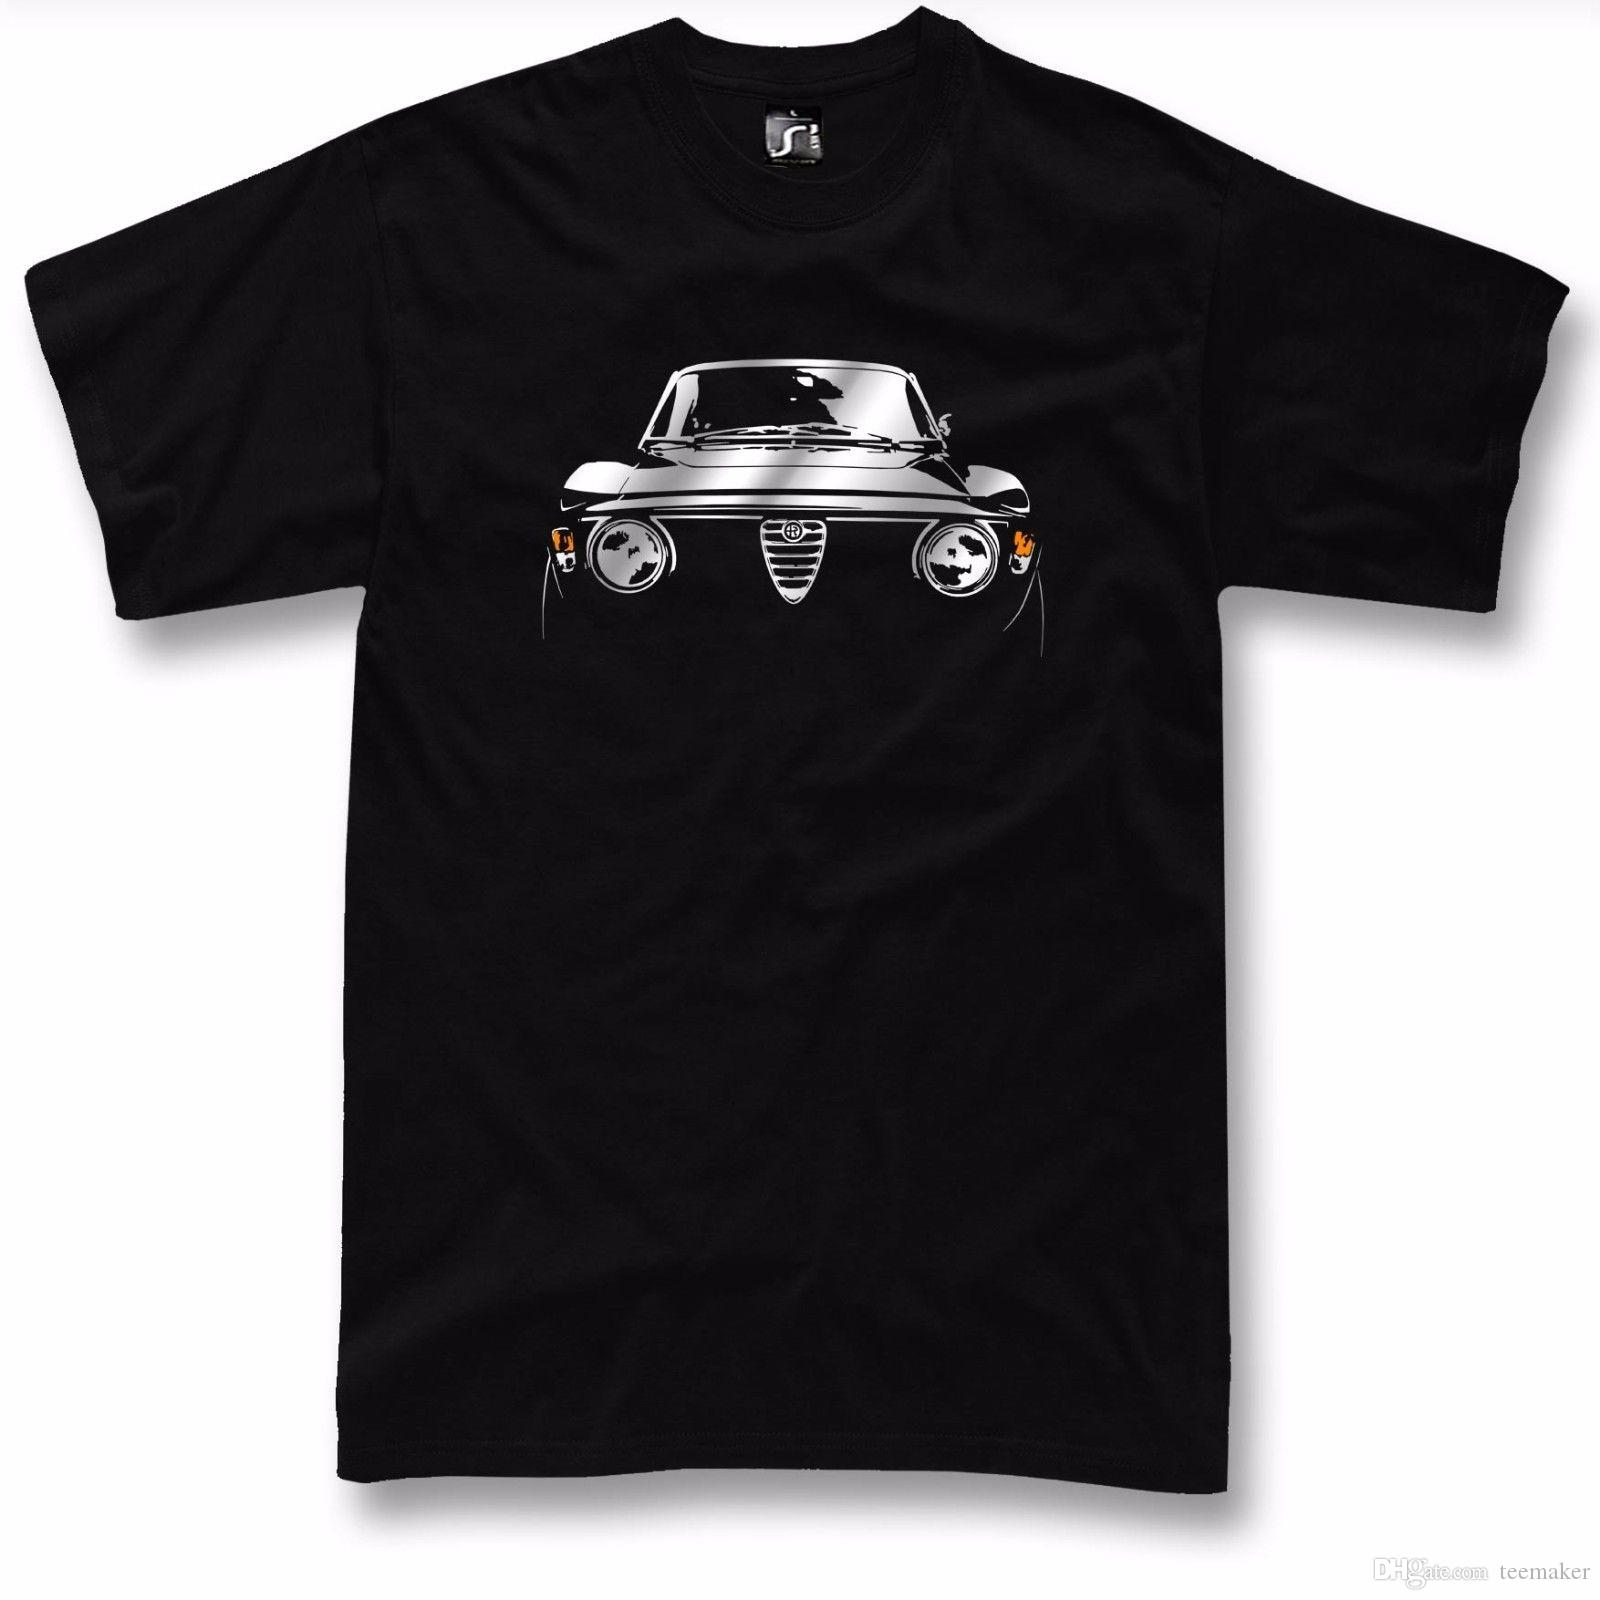 3bf392f2eec Classic Car Tshirt For Alfa Romeo Junior Gt Fans Gta 1750 2000 Veloce T  Shirt O Neck Oversize Style Tee Shirts Styles Family T Shirts Printed Shirt  From ...